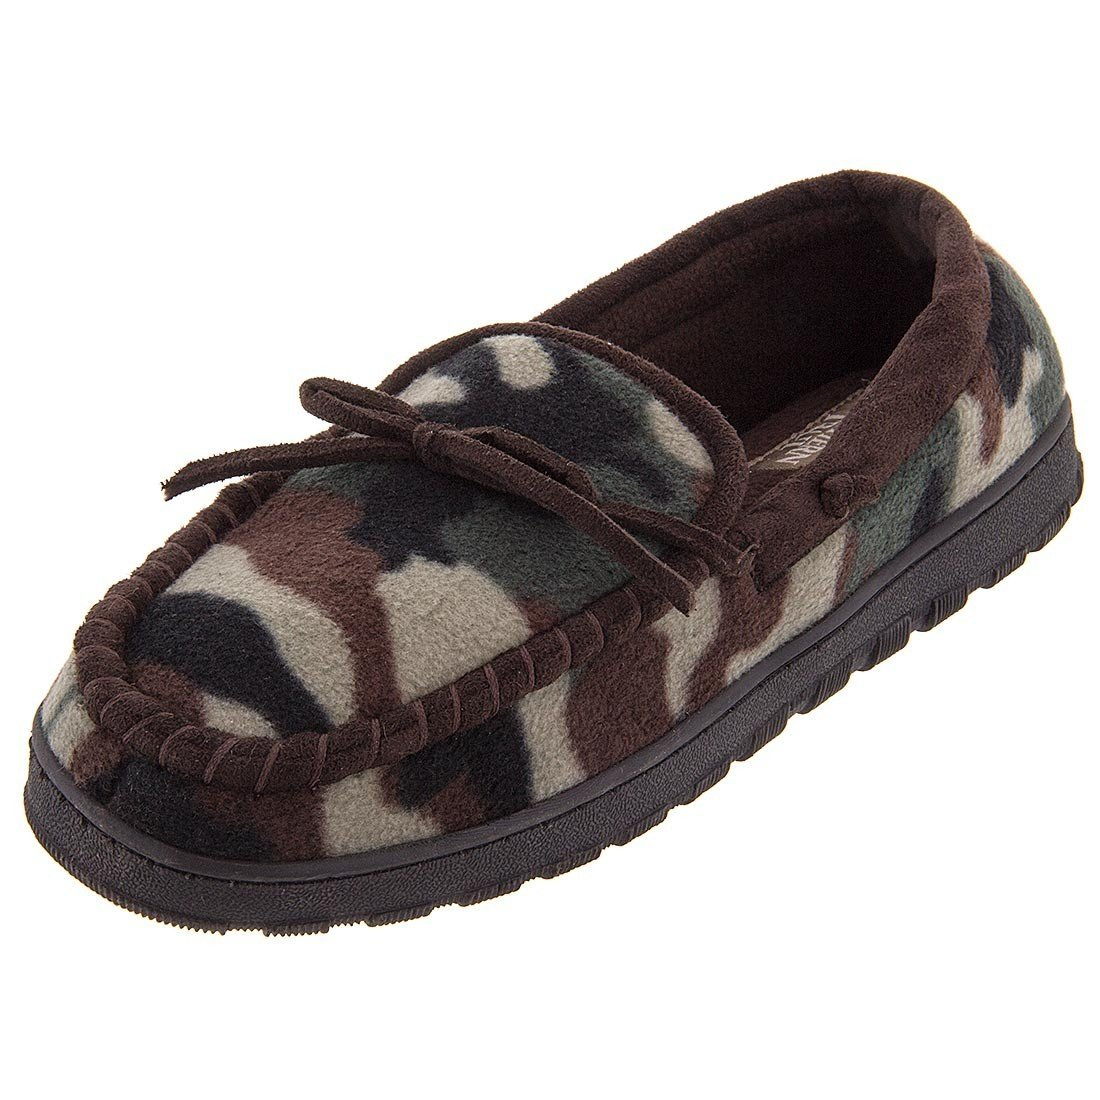 Northern Trail Mens Slippers 8-13 Camouflage Fleece Moccasin Slippers Mens B0060VP4PO Moccasin 591e78